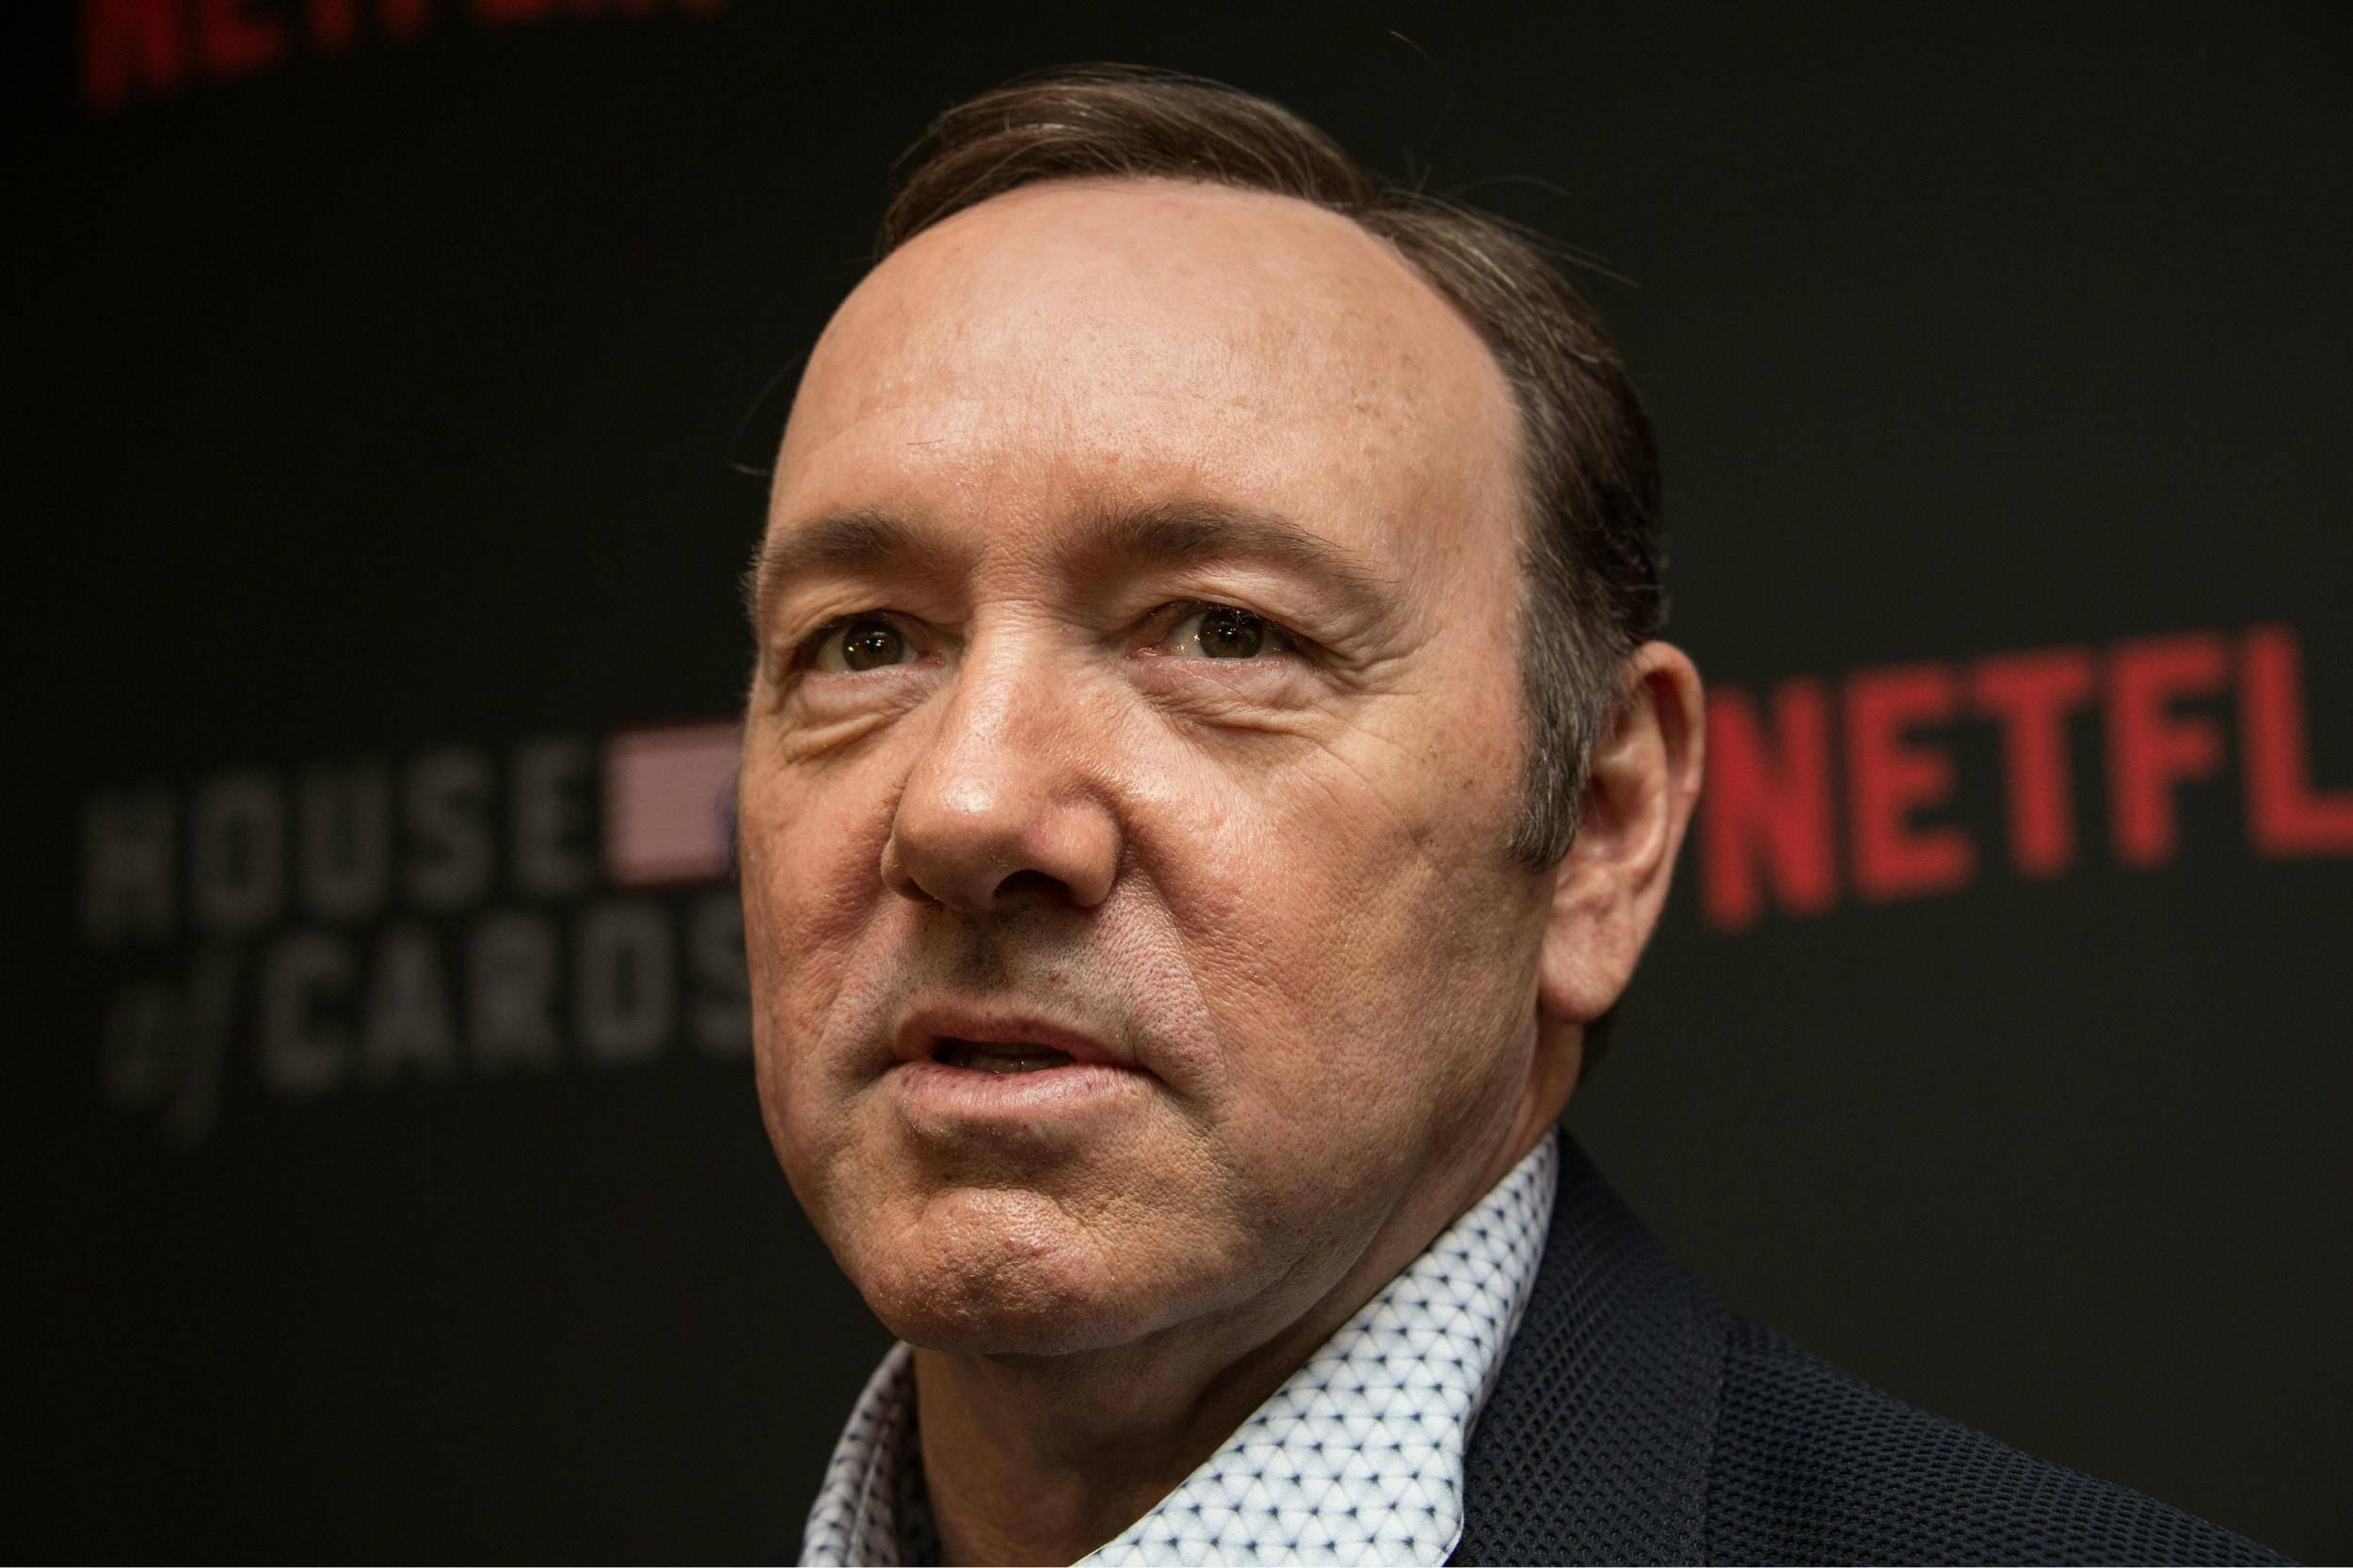 When it comes to Kevin Spacey and Harvey Weinstein, we must learn from the past, not airbrush it